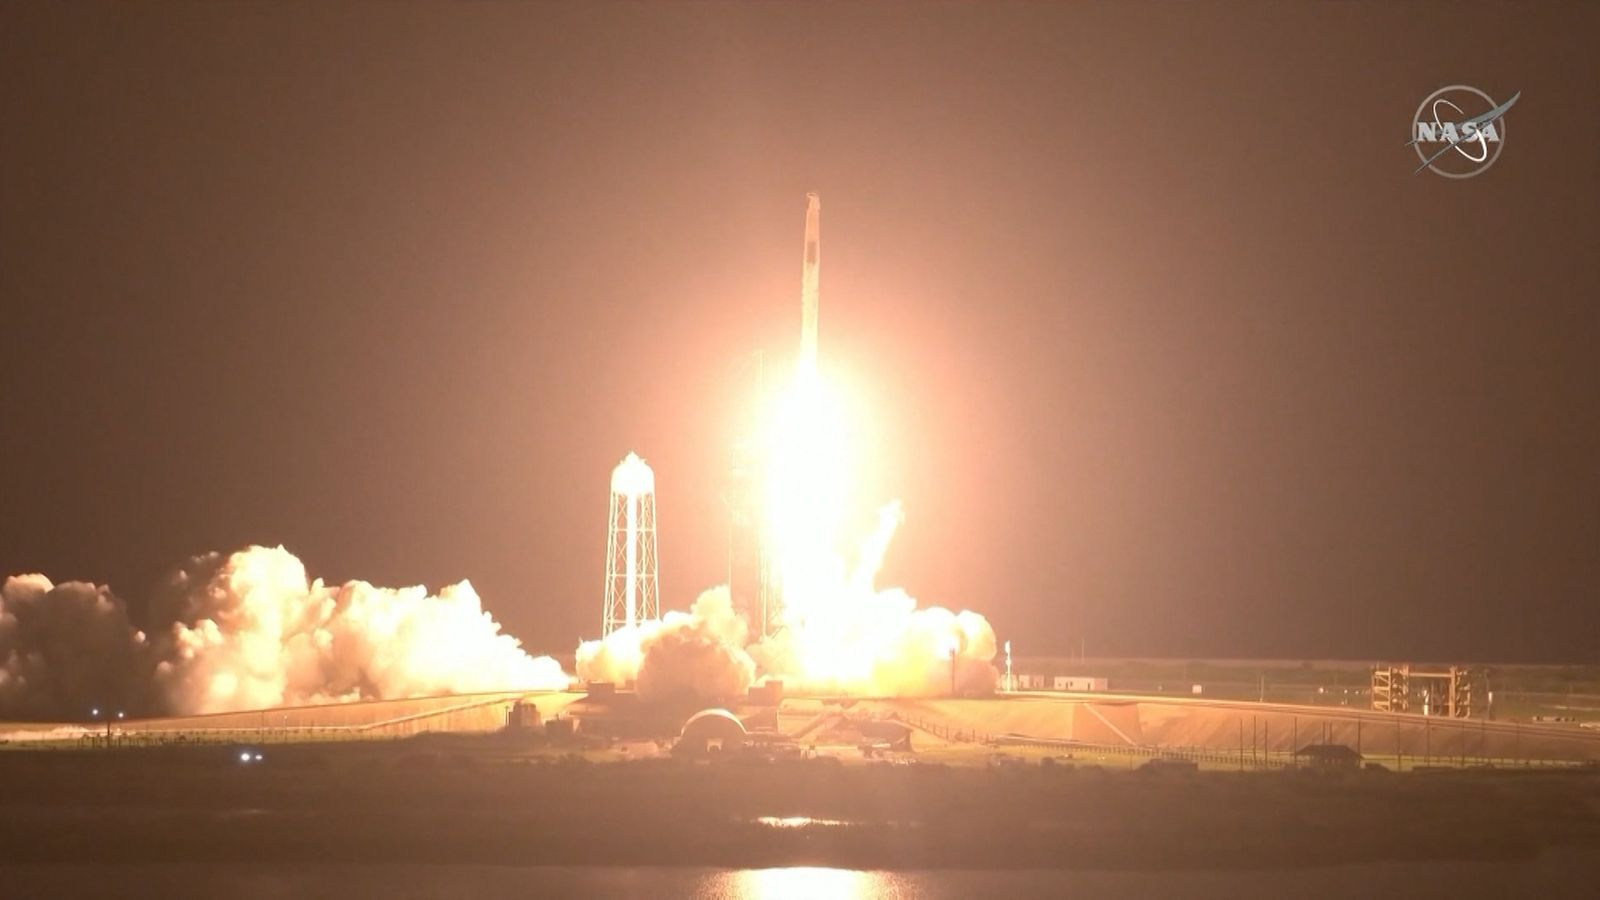 SpaceX's new mission to the International Space Station (ISS) begins